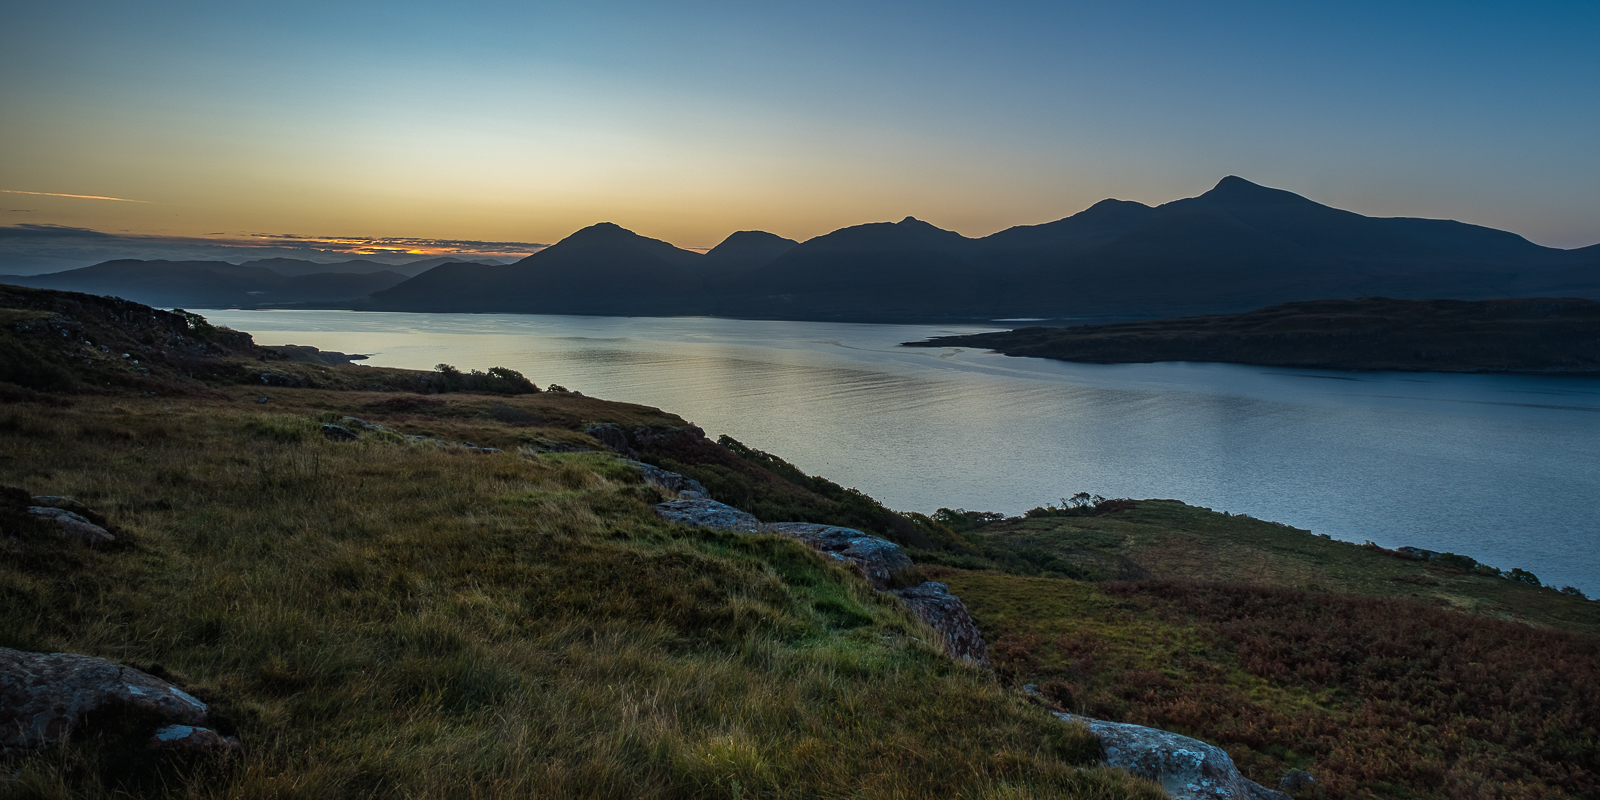 Sunrise over Loch na Keal